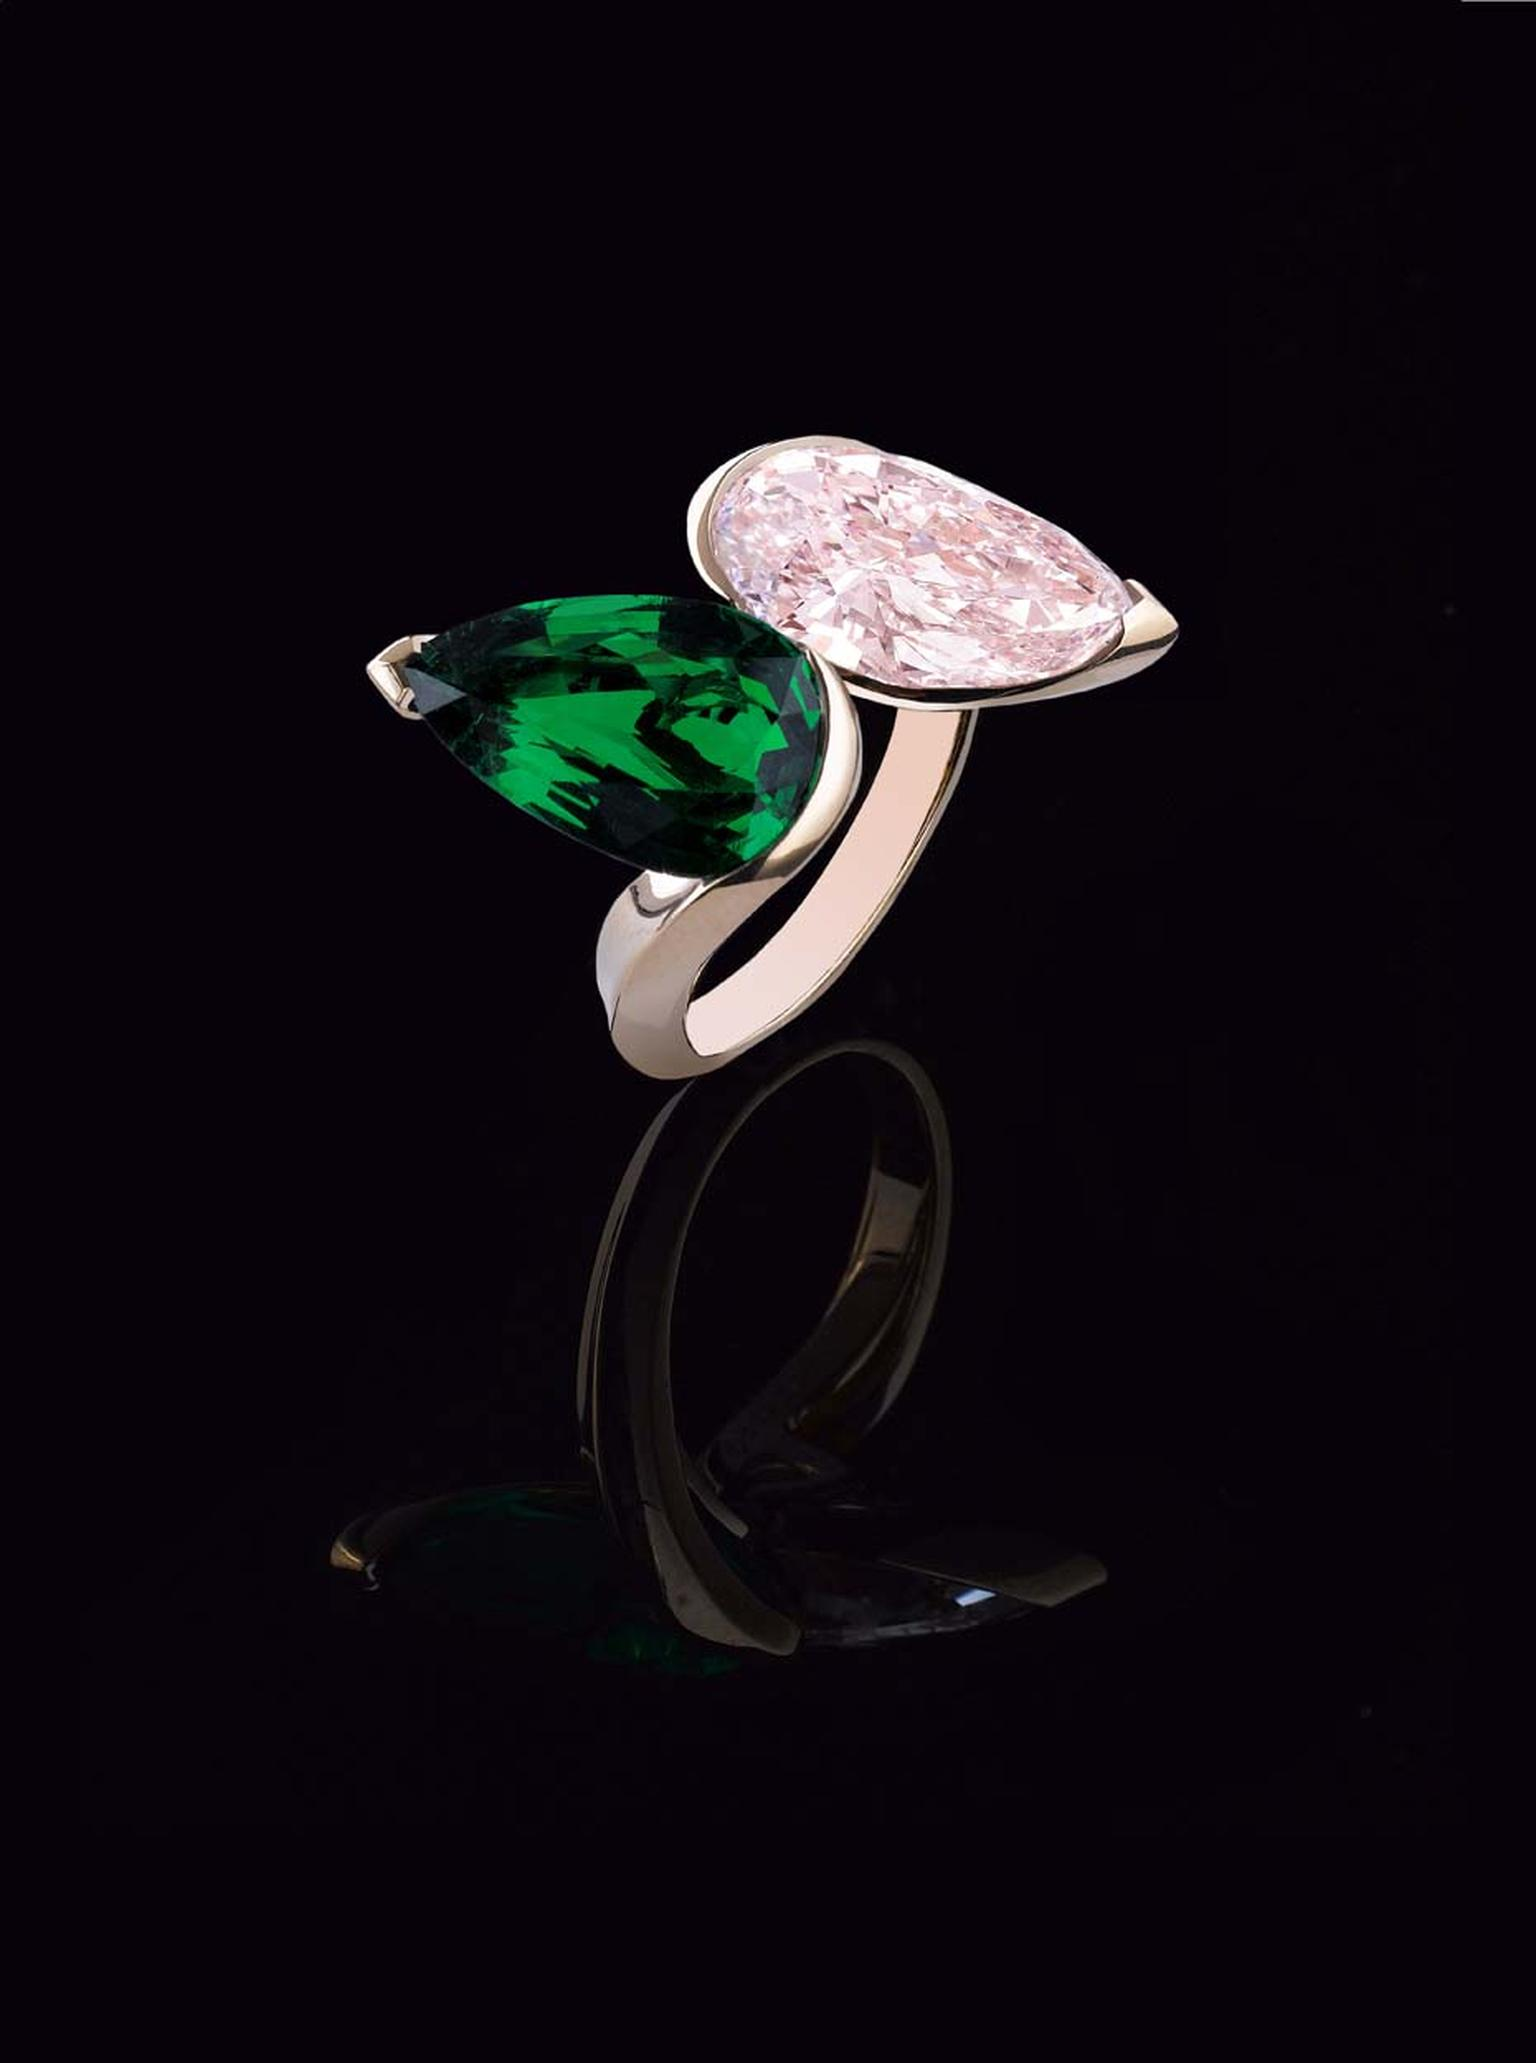 Alexandre Reza Toi & Moi pink gold ring featuring a 5.04ct Fancy Pink, internally flawless, pear-shaped diamond alongside a bright green Zambian emerald.